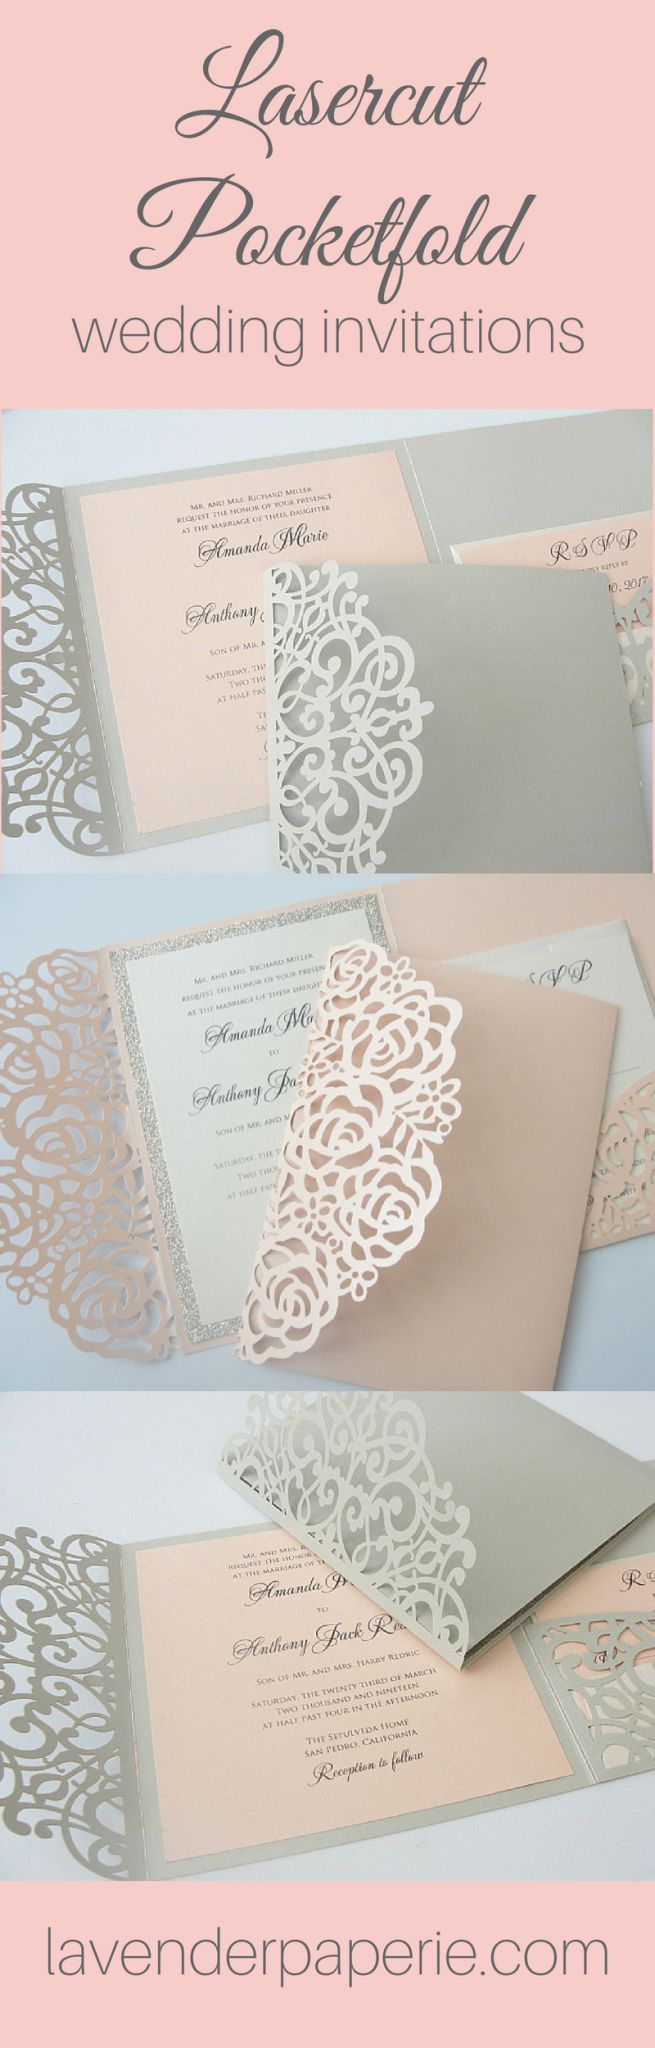 Laser Cut Pocket Invitations by Lavender Paperie